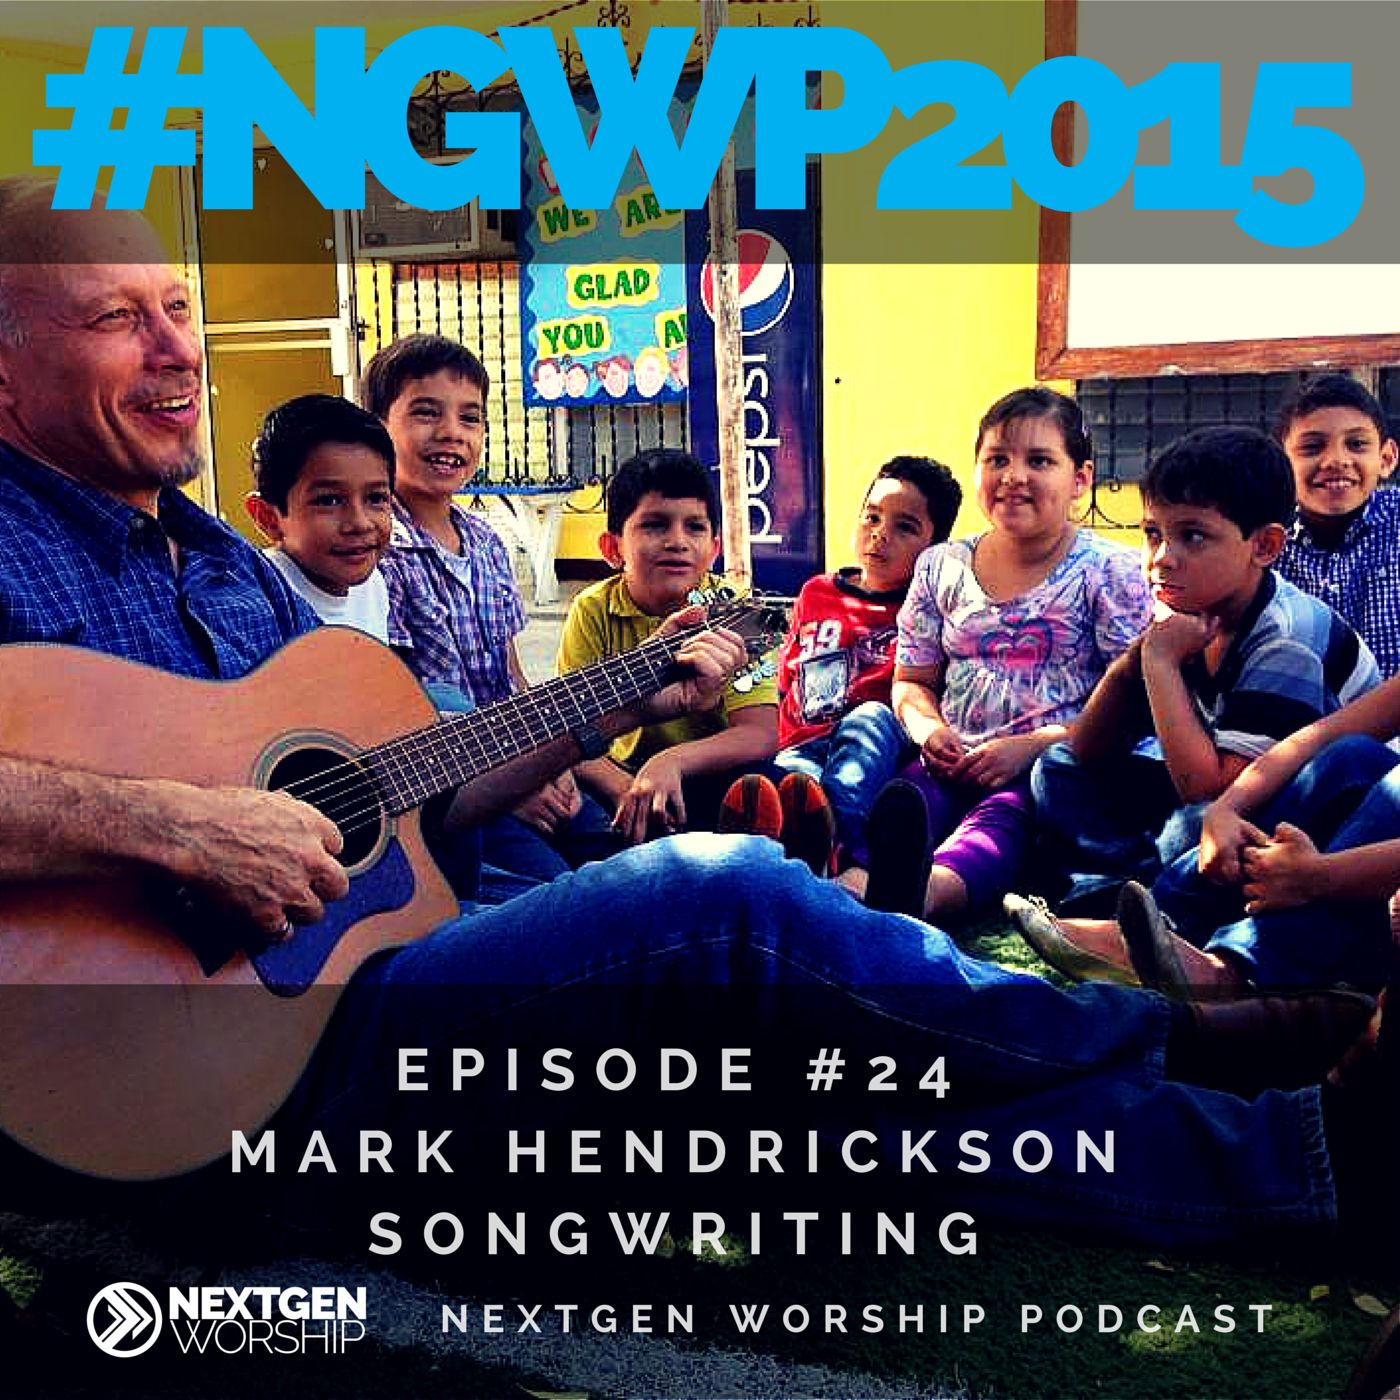 Episode #24 Mark Hendrickson - Songwriting - Nextgen Worship Podcast